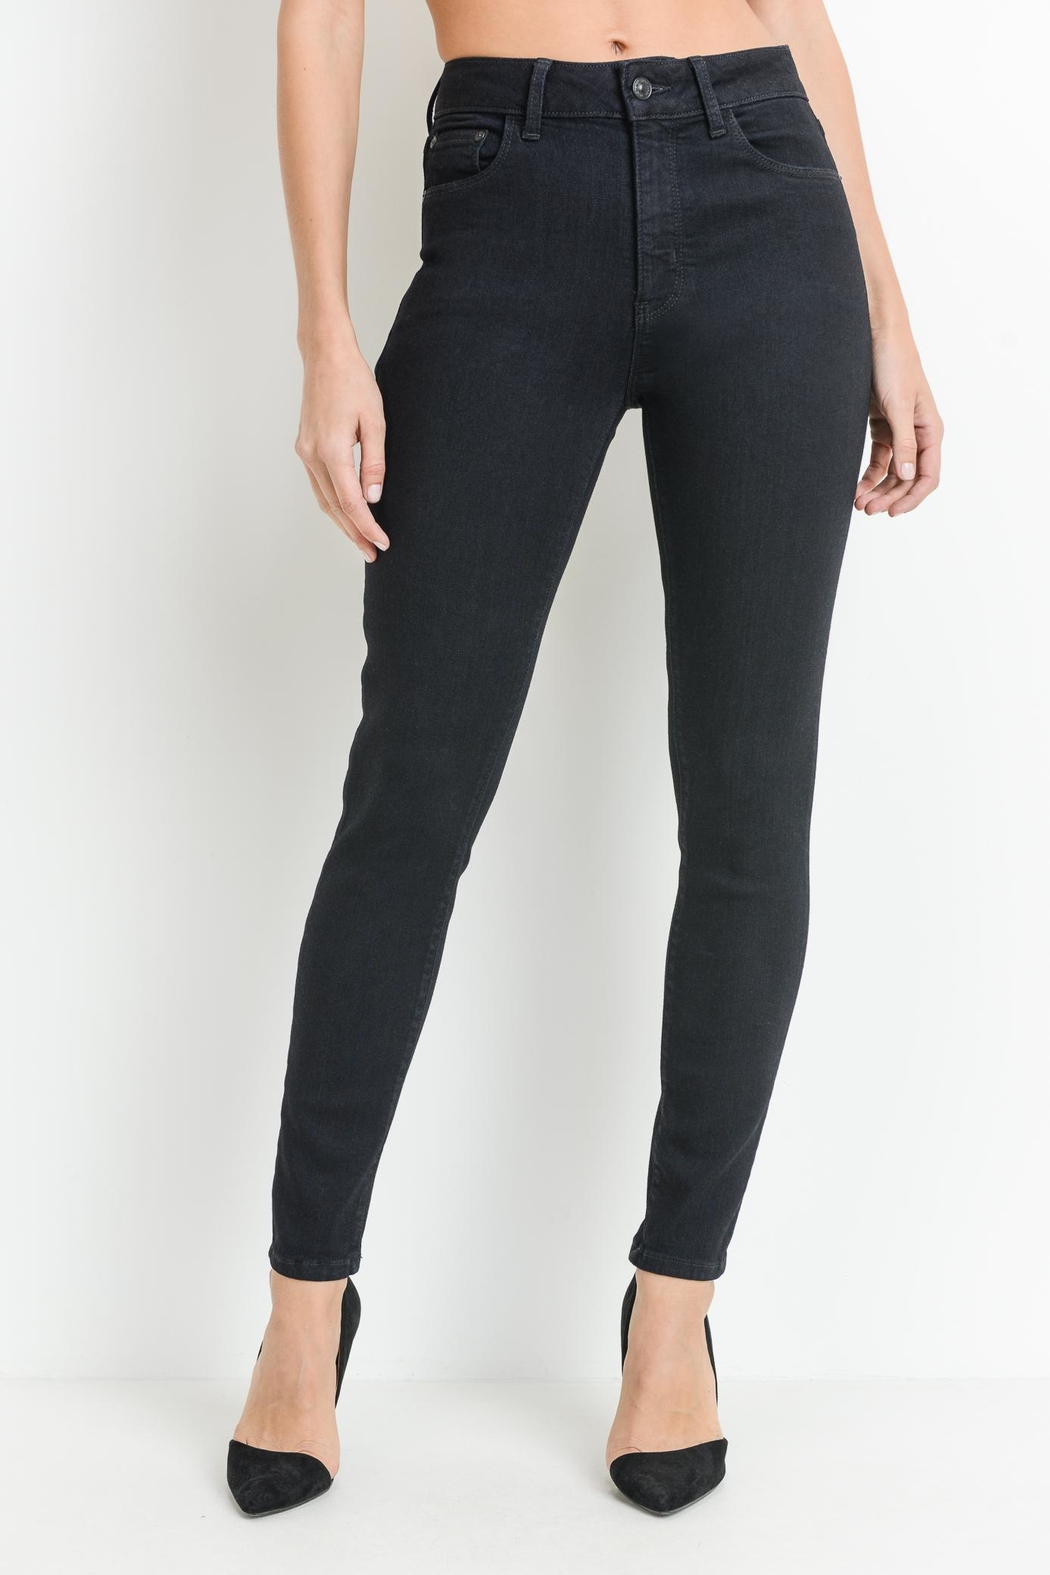 just black Dark Denim Jeans - Main Image